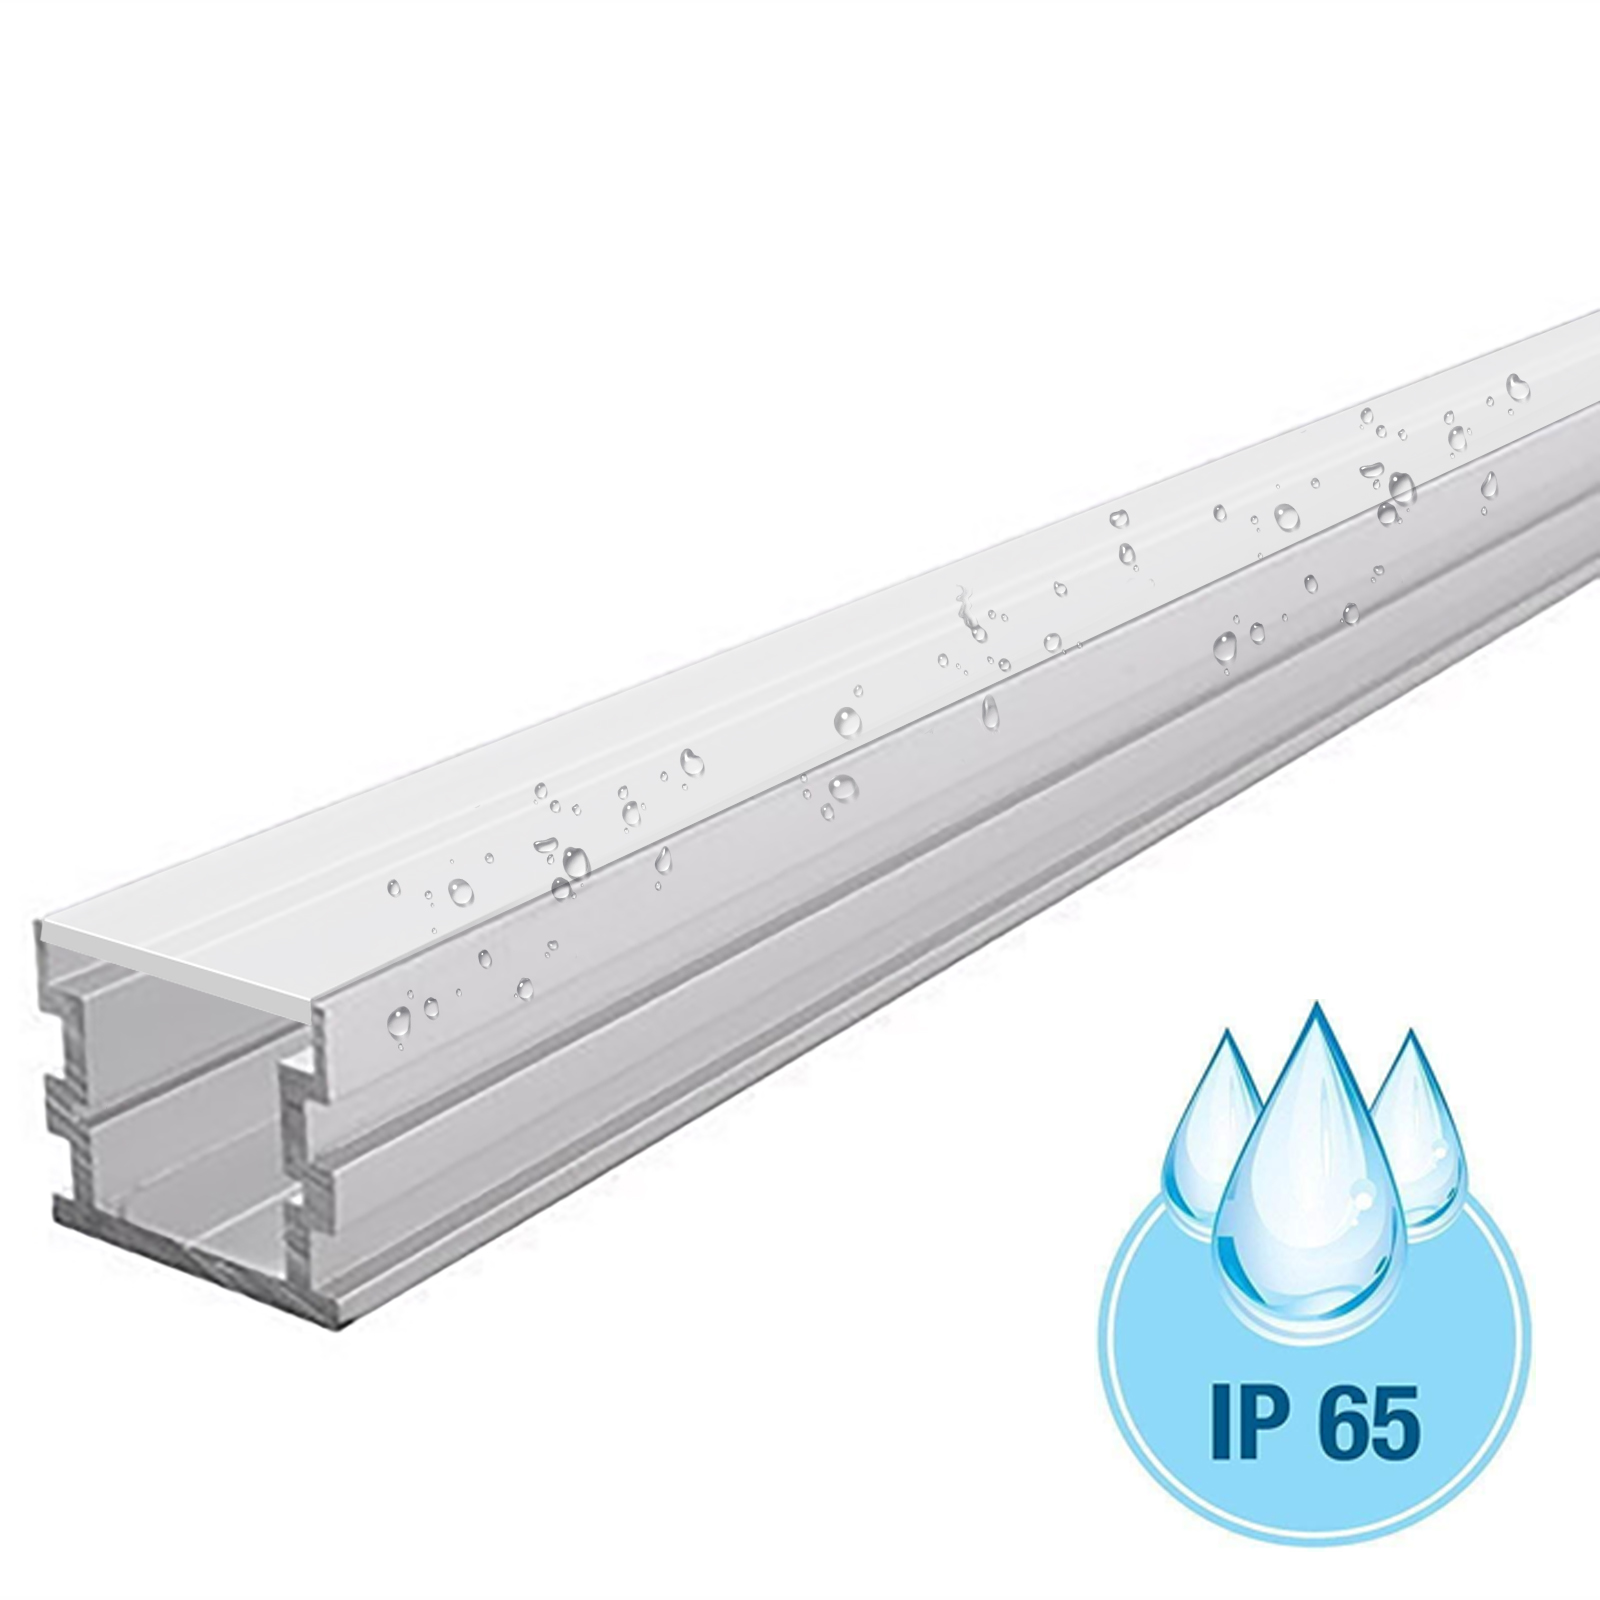 Aluminium profile 24mm U-HIGH IP65 bar linear recessed and floor support, LED strips outdoor